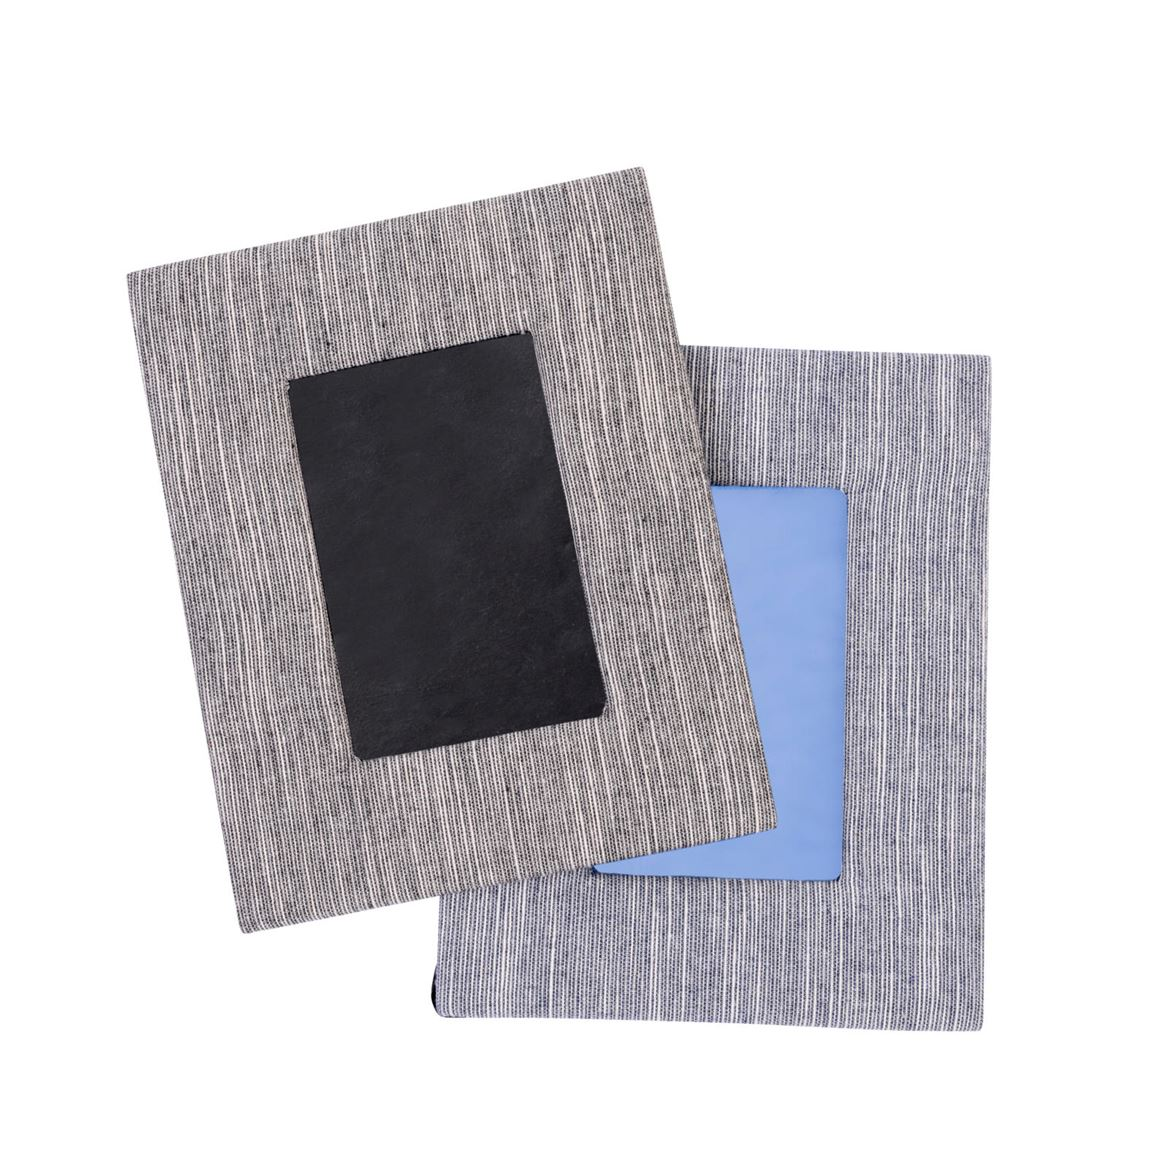 CHAMBRAY Marco para foto 2 colores varios colores A 24 x An. 19 cm_chambray-marco-para-foto-2-colores-varios-colores-a-24-x-an--19-cm